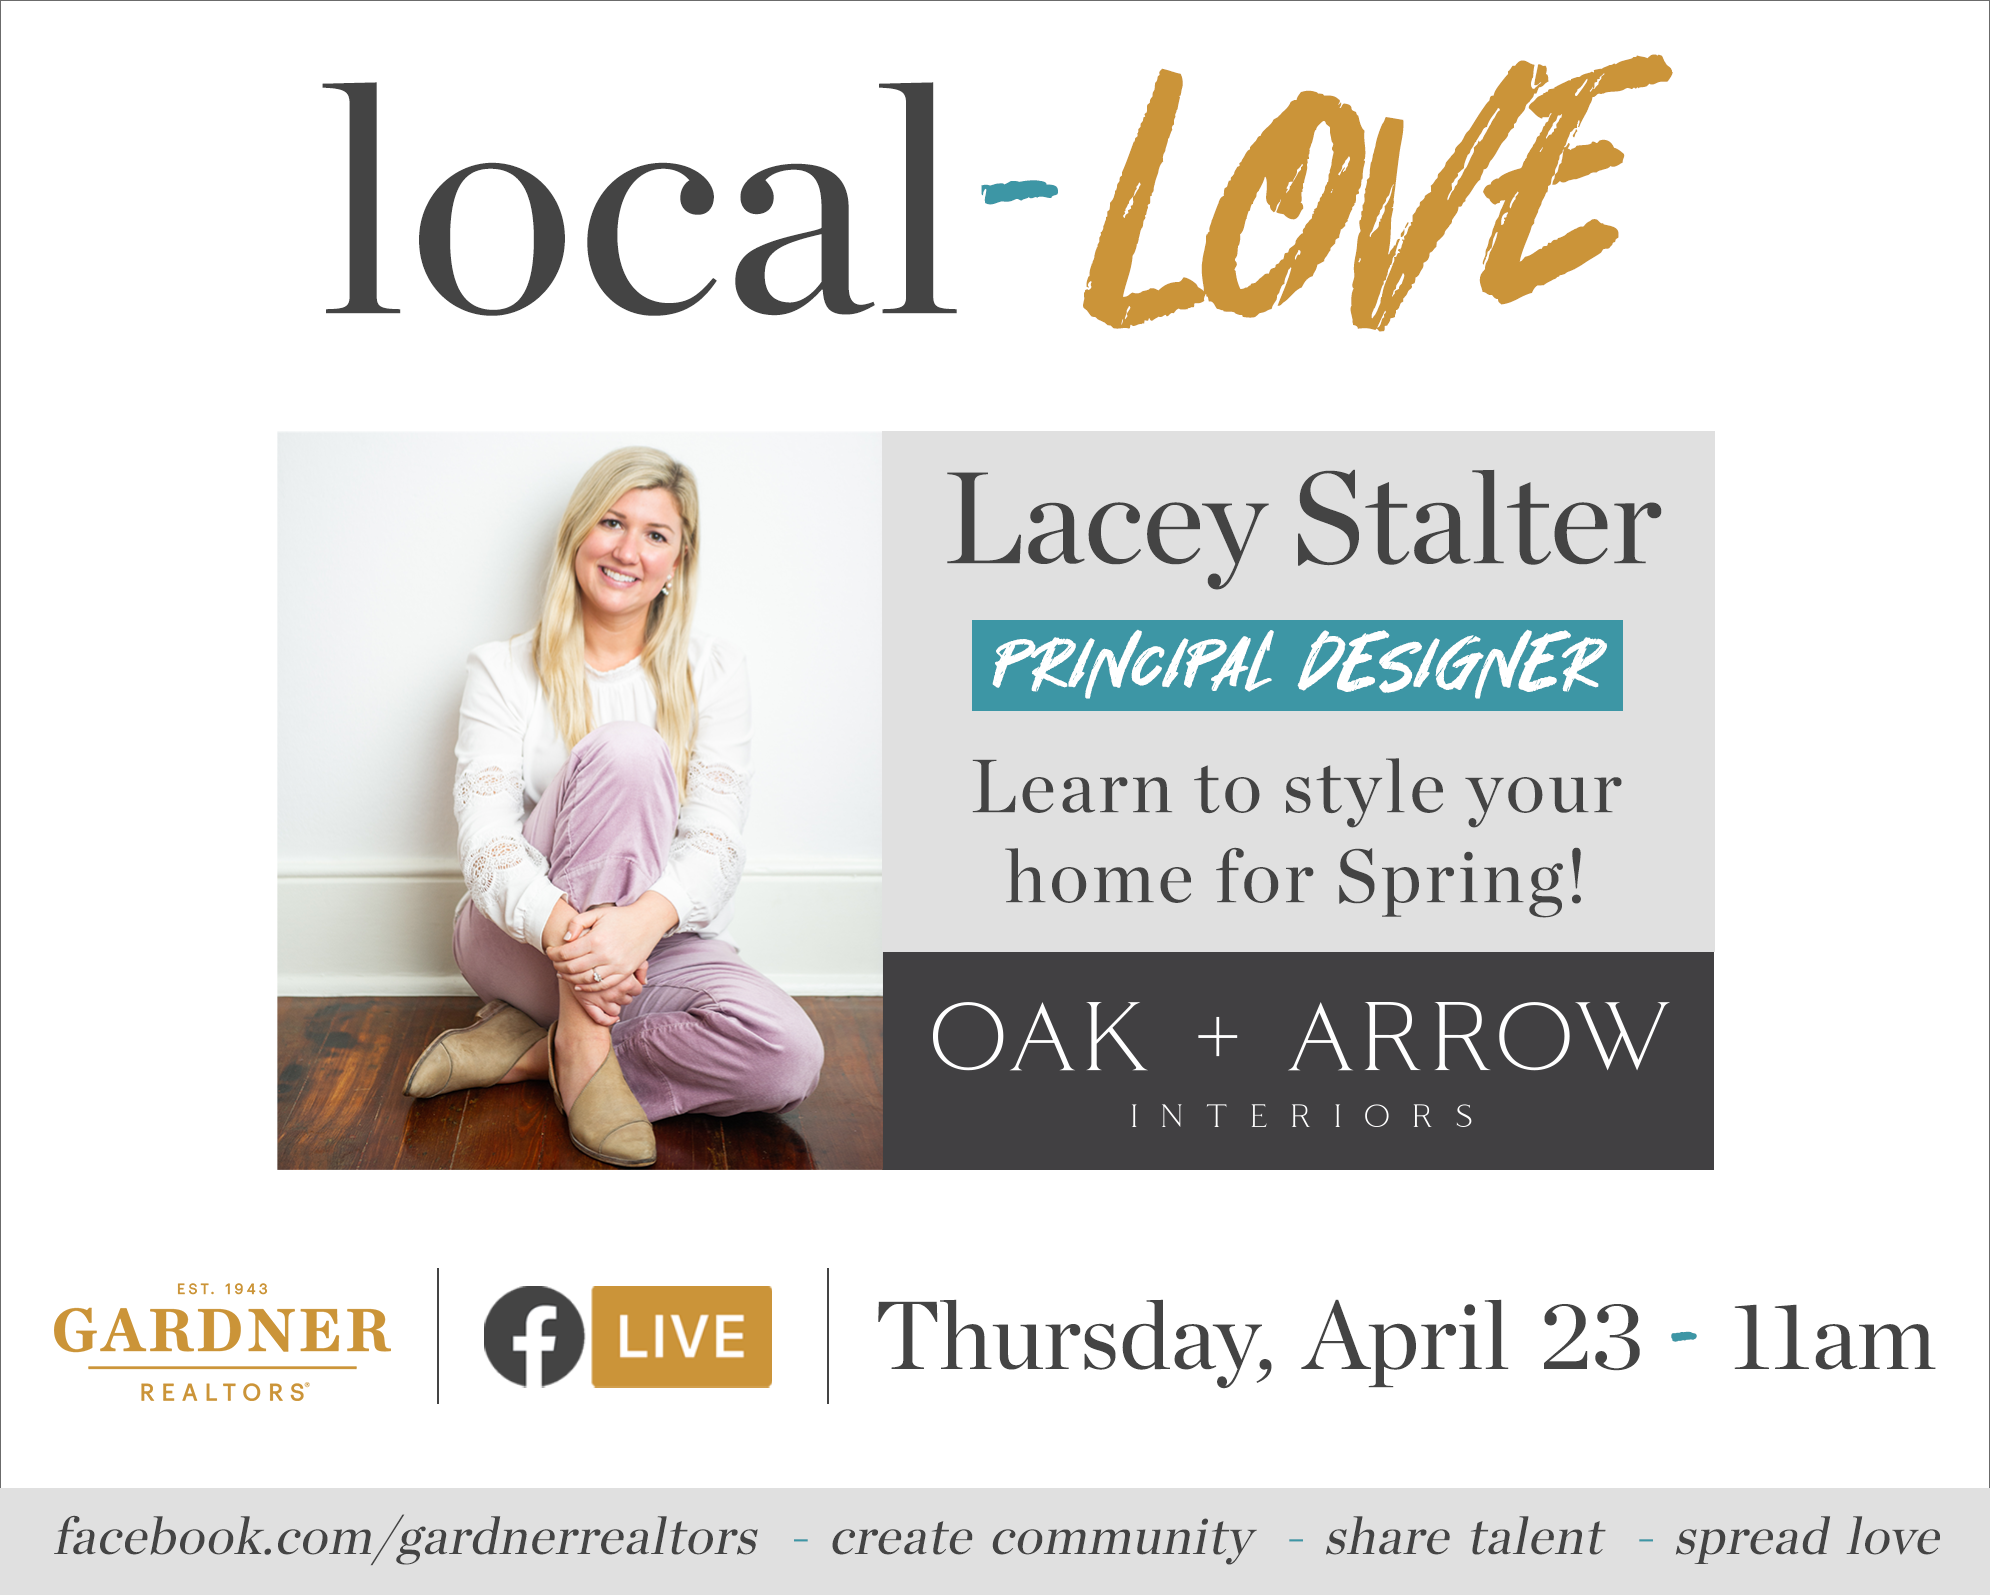 local love - lacey